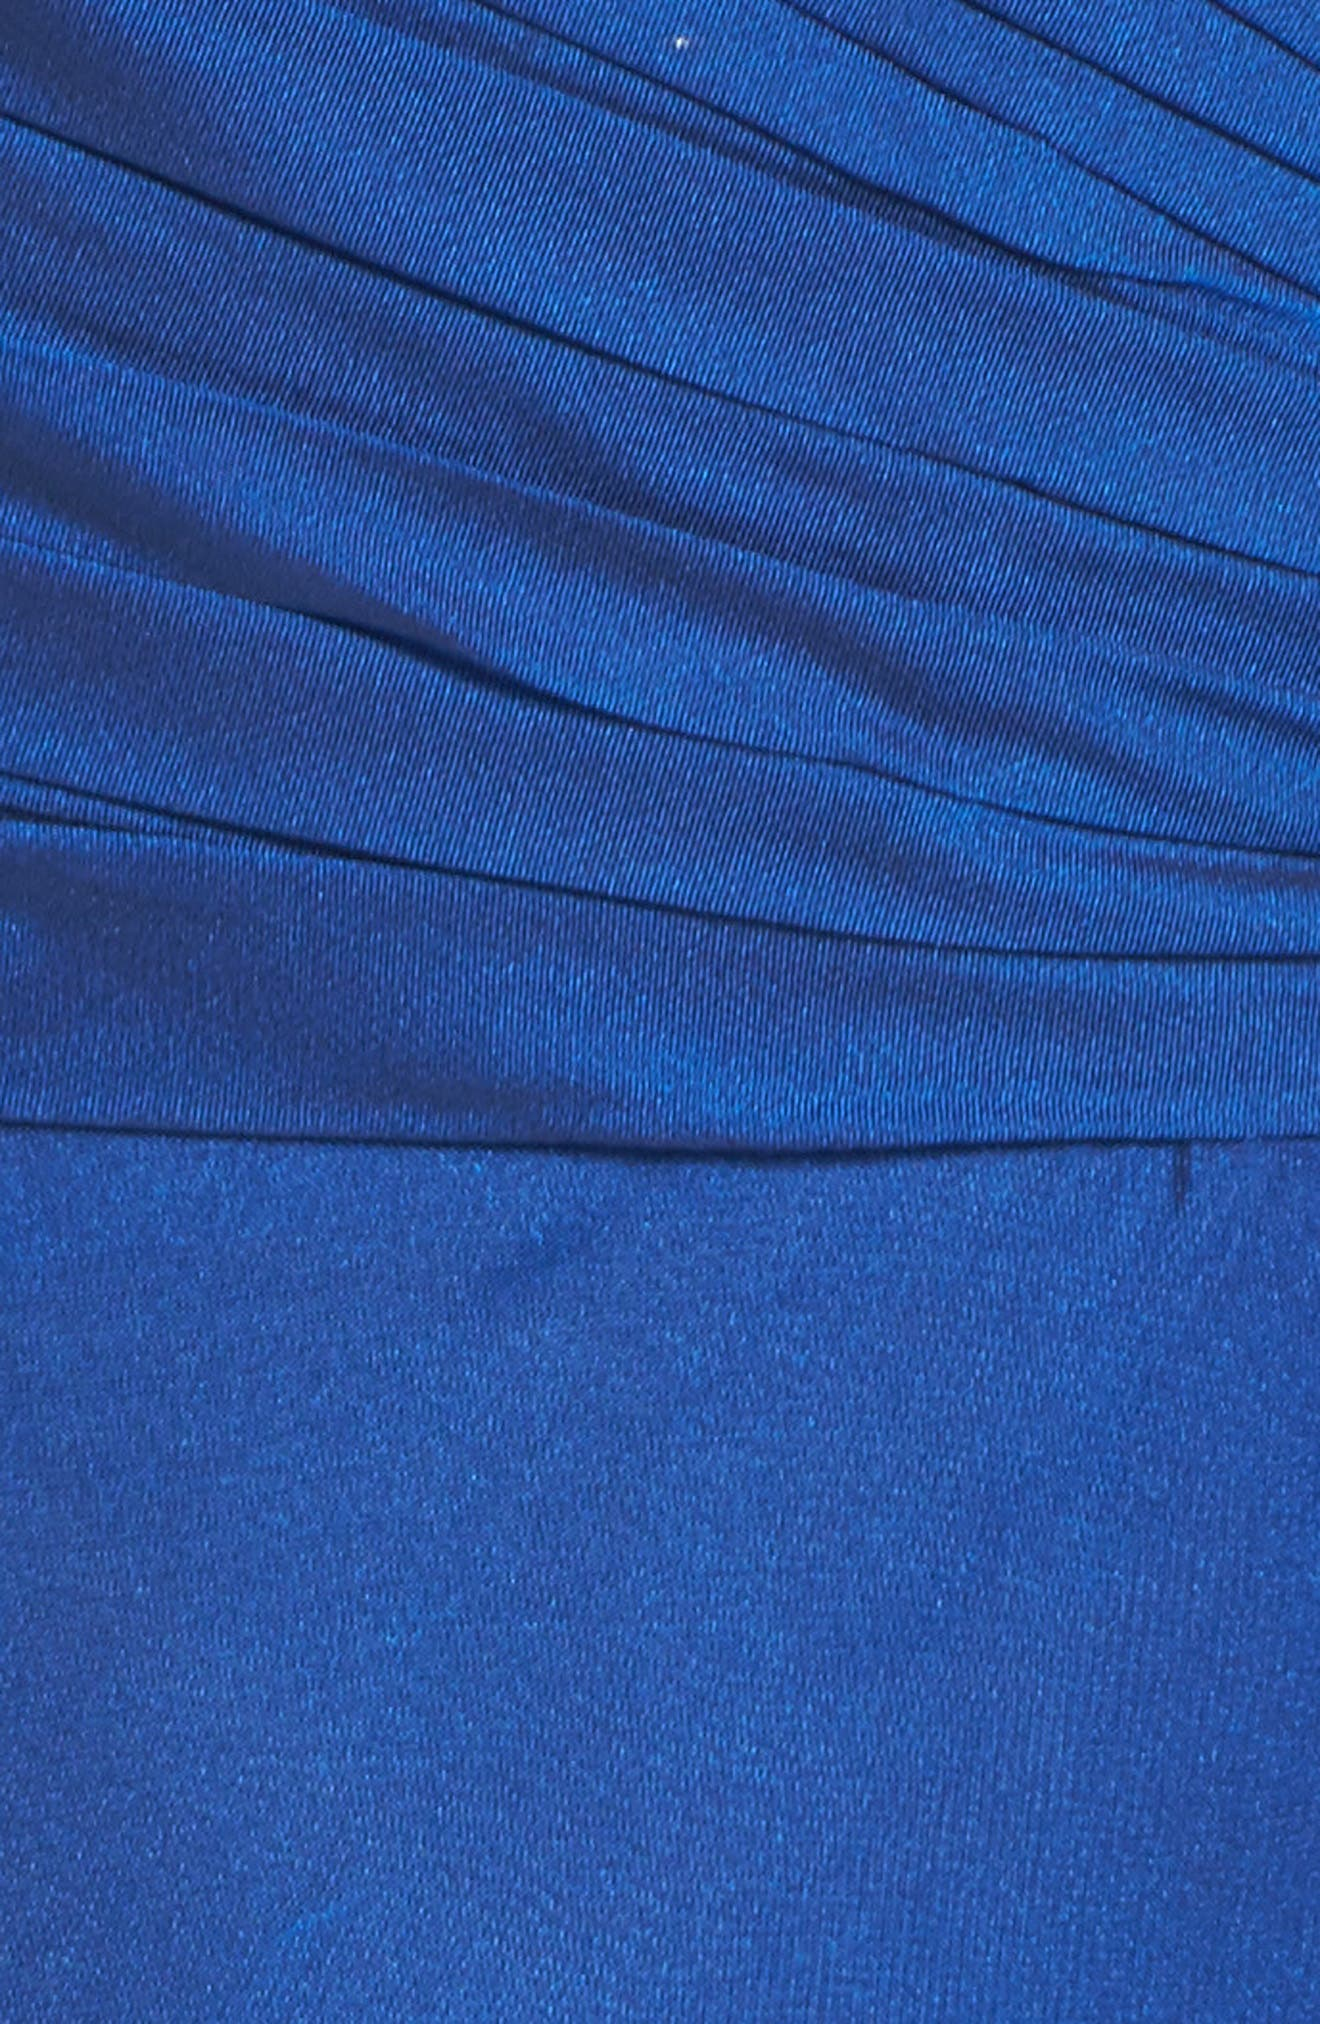 Ruched Chiffon Gown,                             Alternate thumbnail 5, color,                             Marine Blue